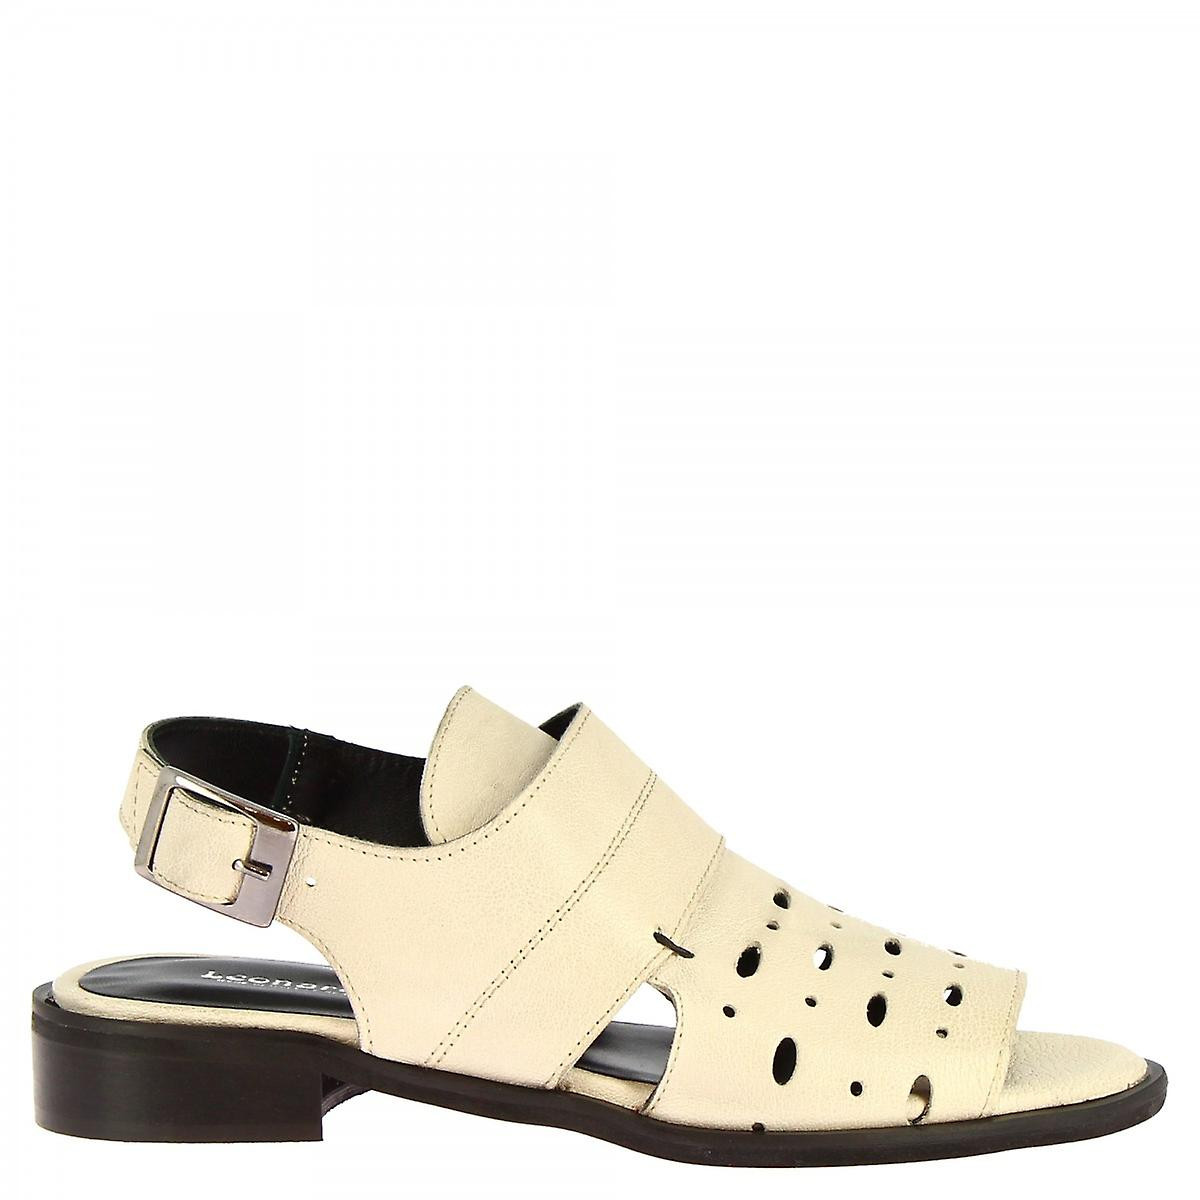 Leonardo Shoes Women's handmade low sandals in white calf leather with buckle